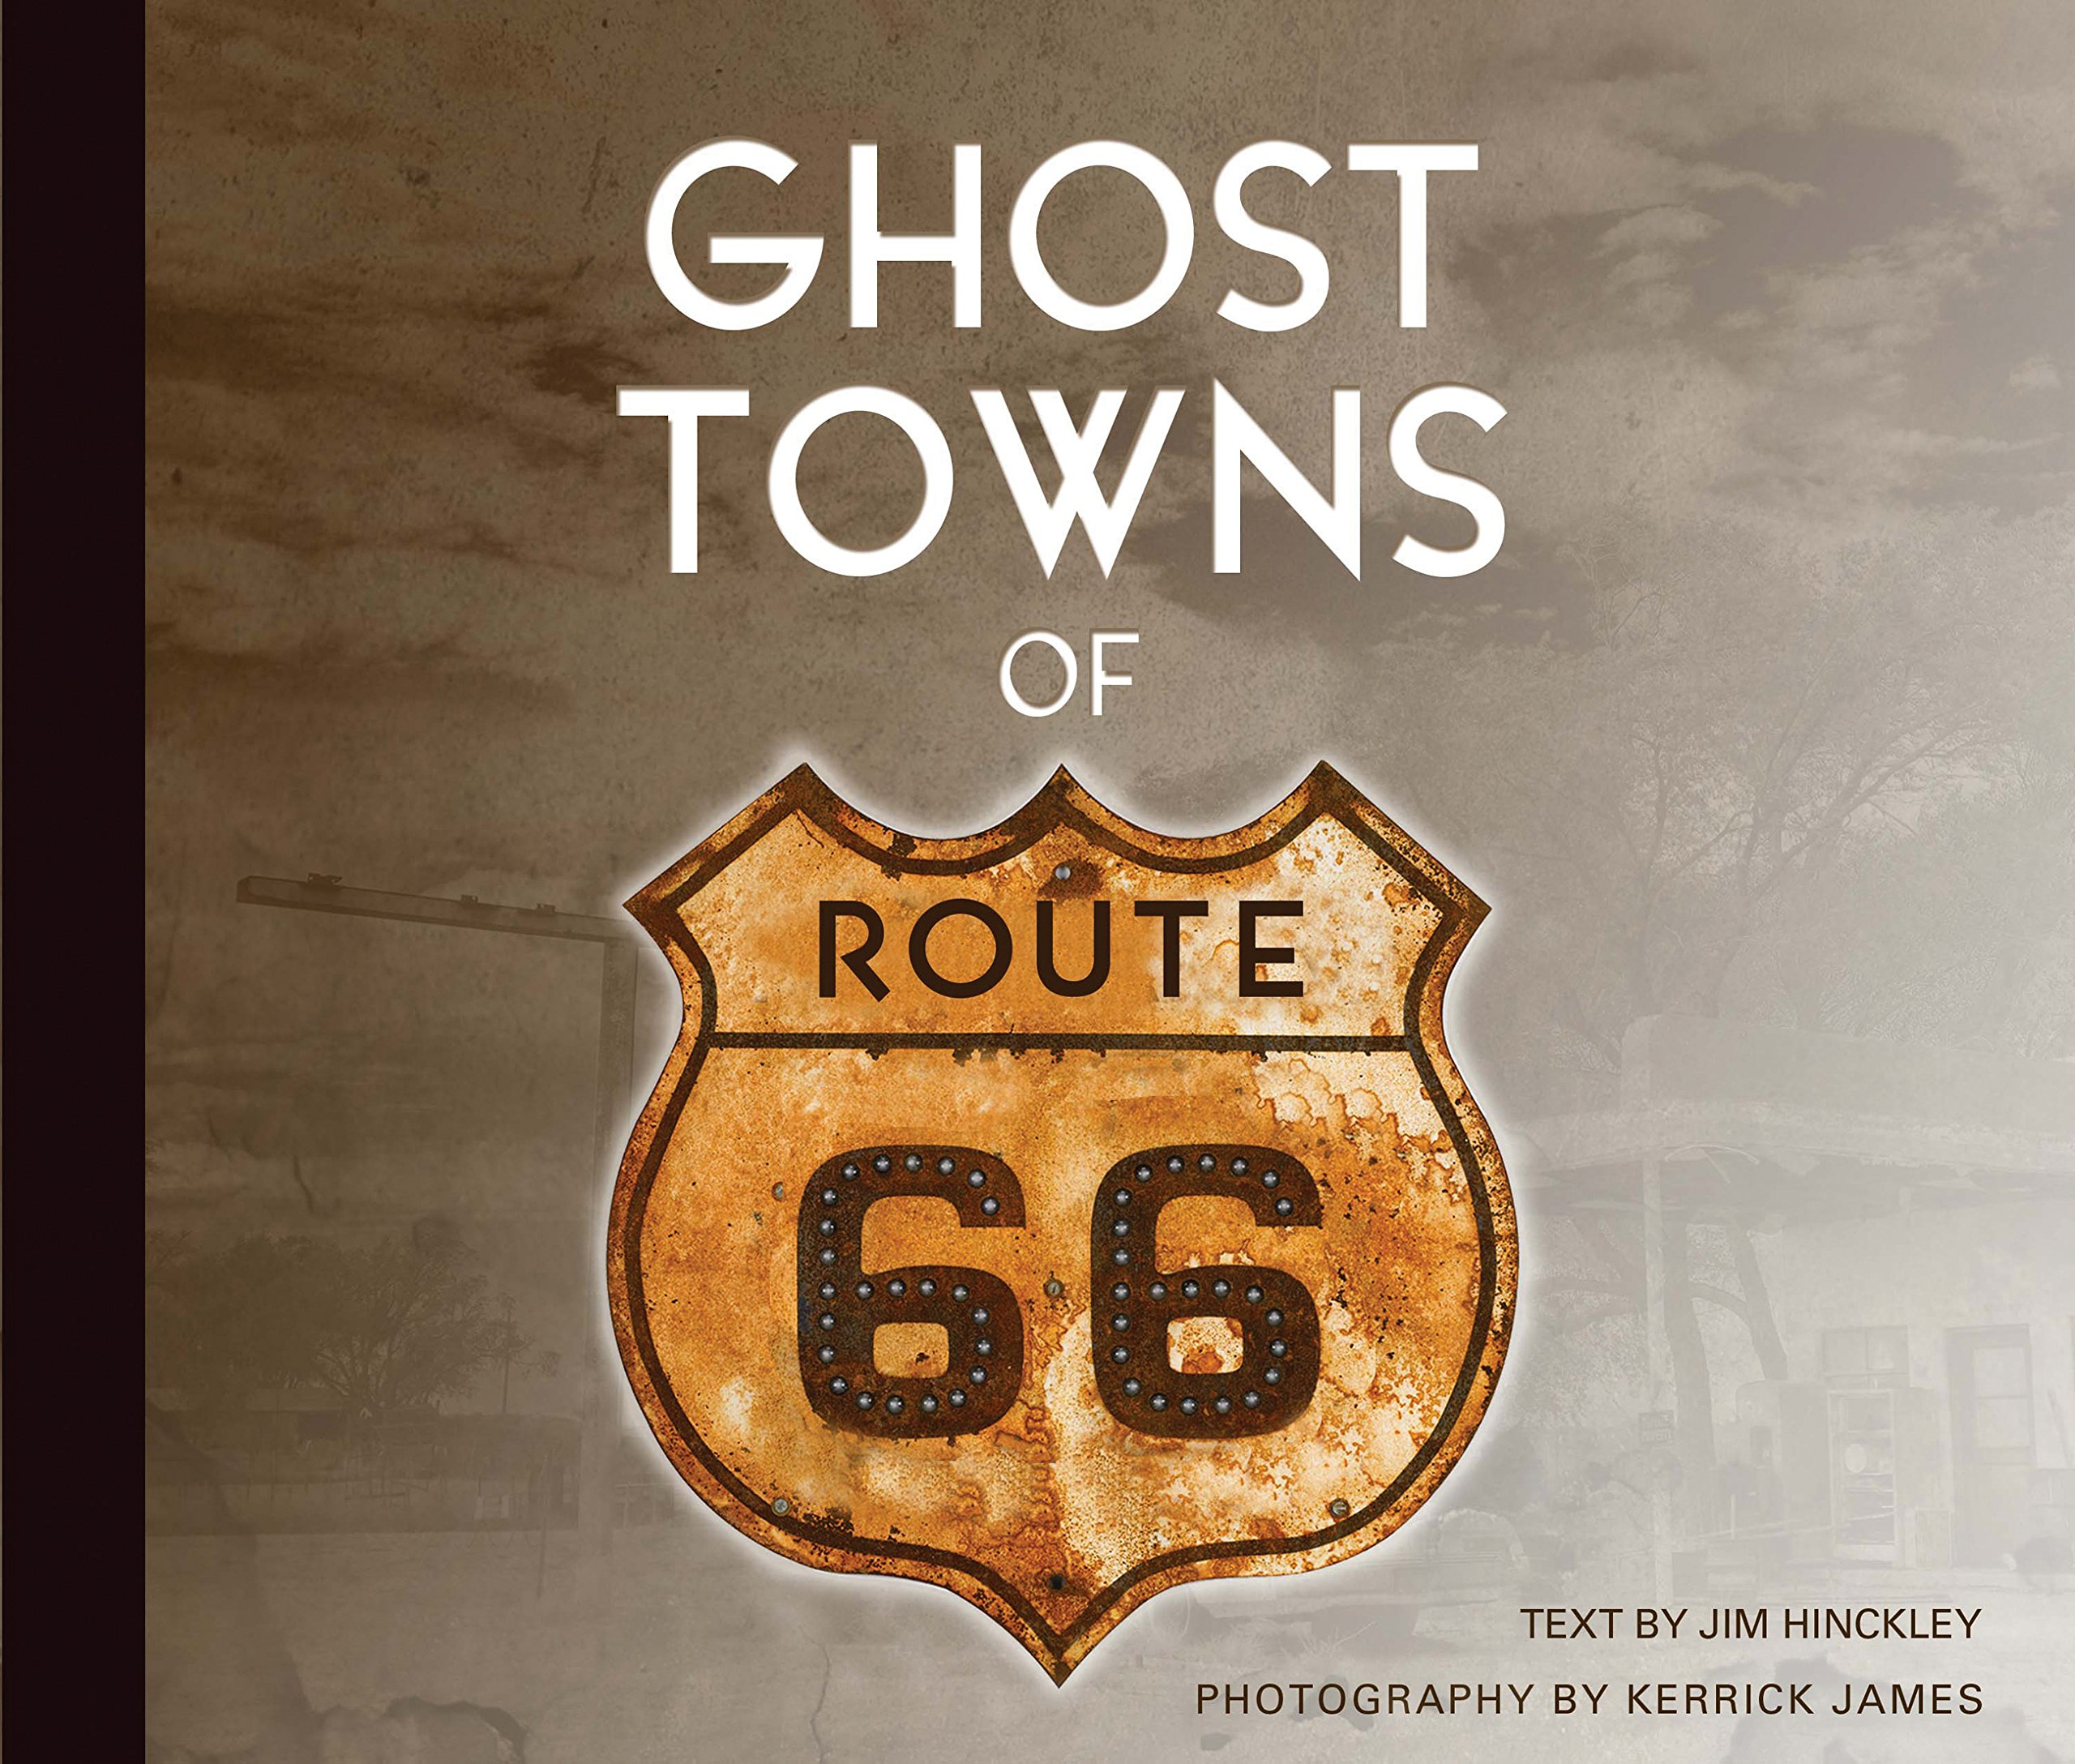 Image OfGhost Towns Of Route 66